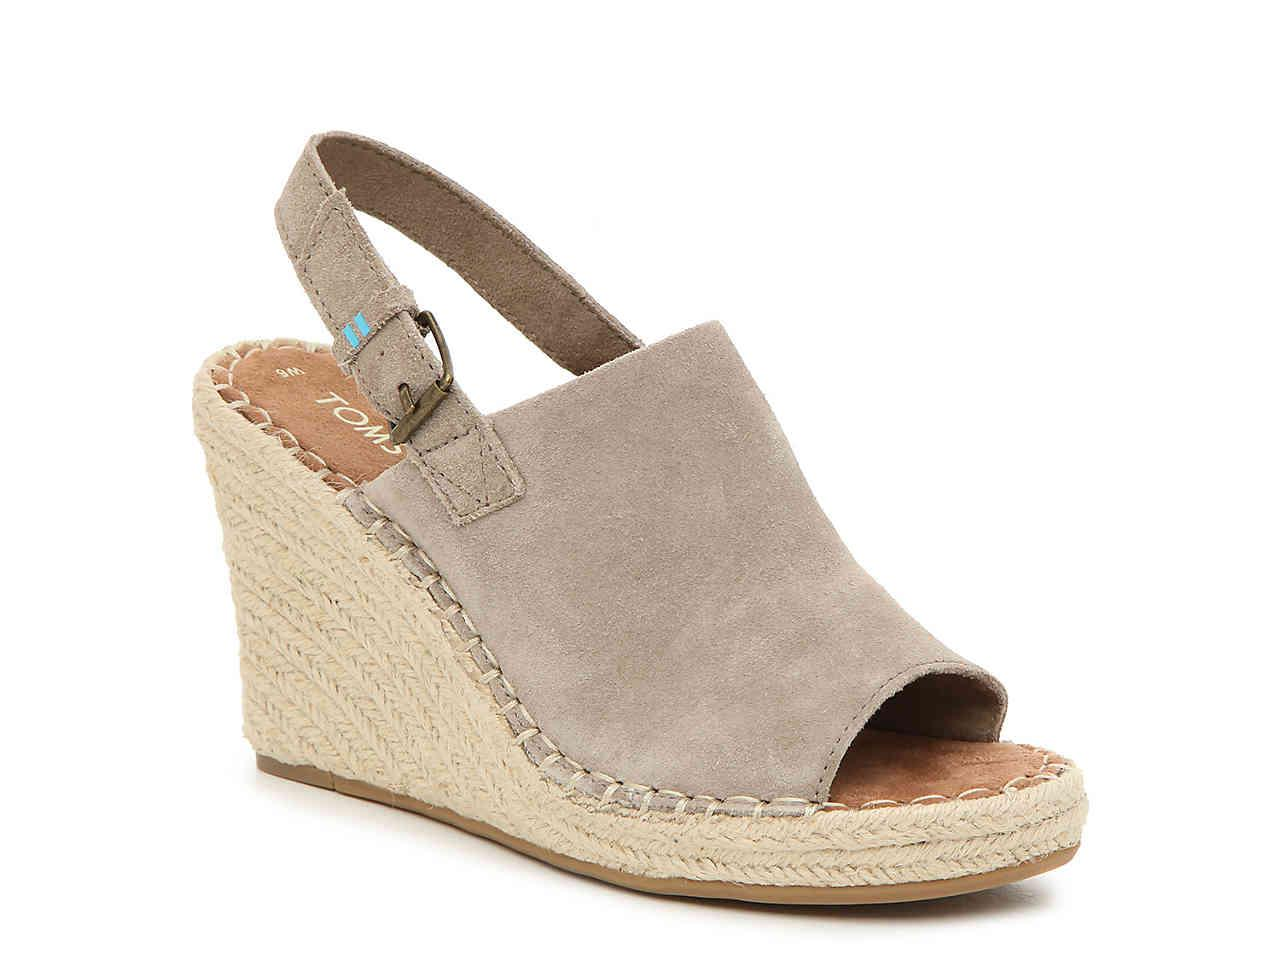 48b0fb113a43 TOMS. Women s Brown Monica Espadrille Wedge Sandal.  90 From DSW. Price  last checked 7 ...